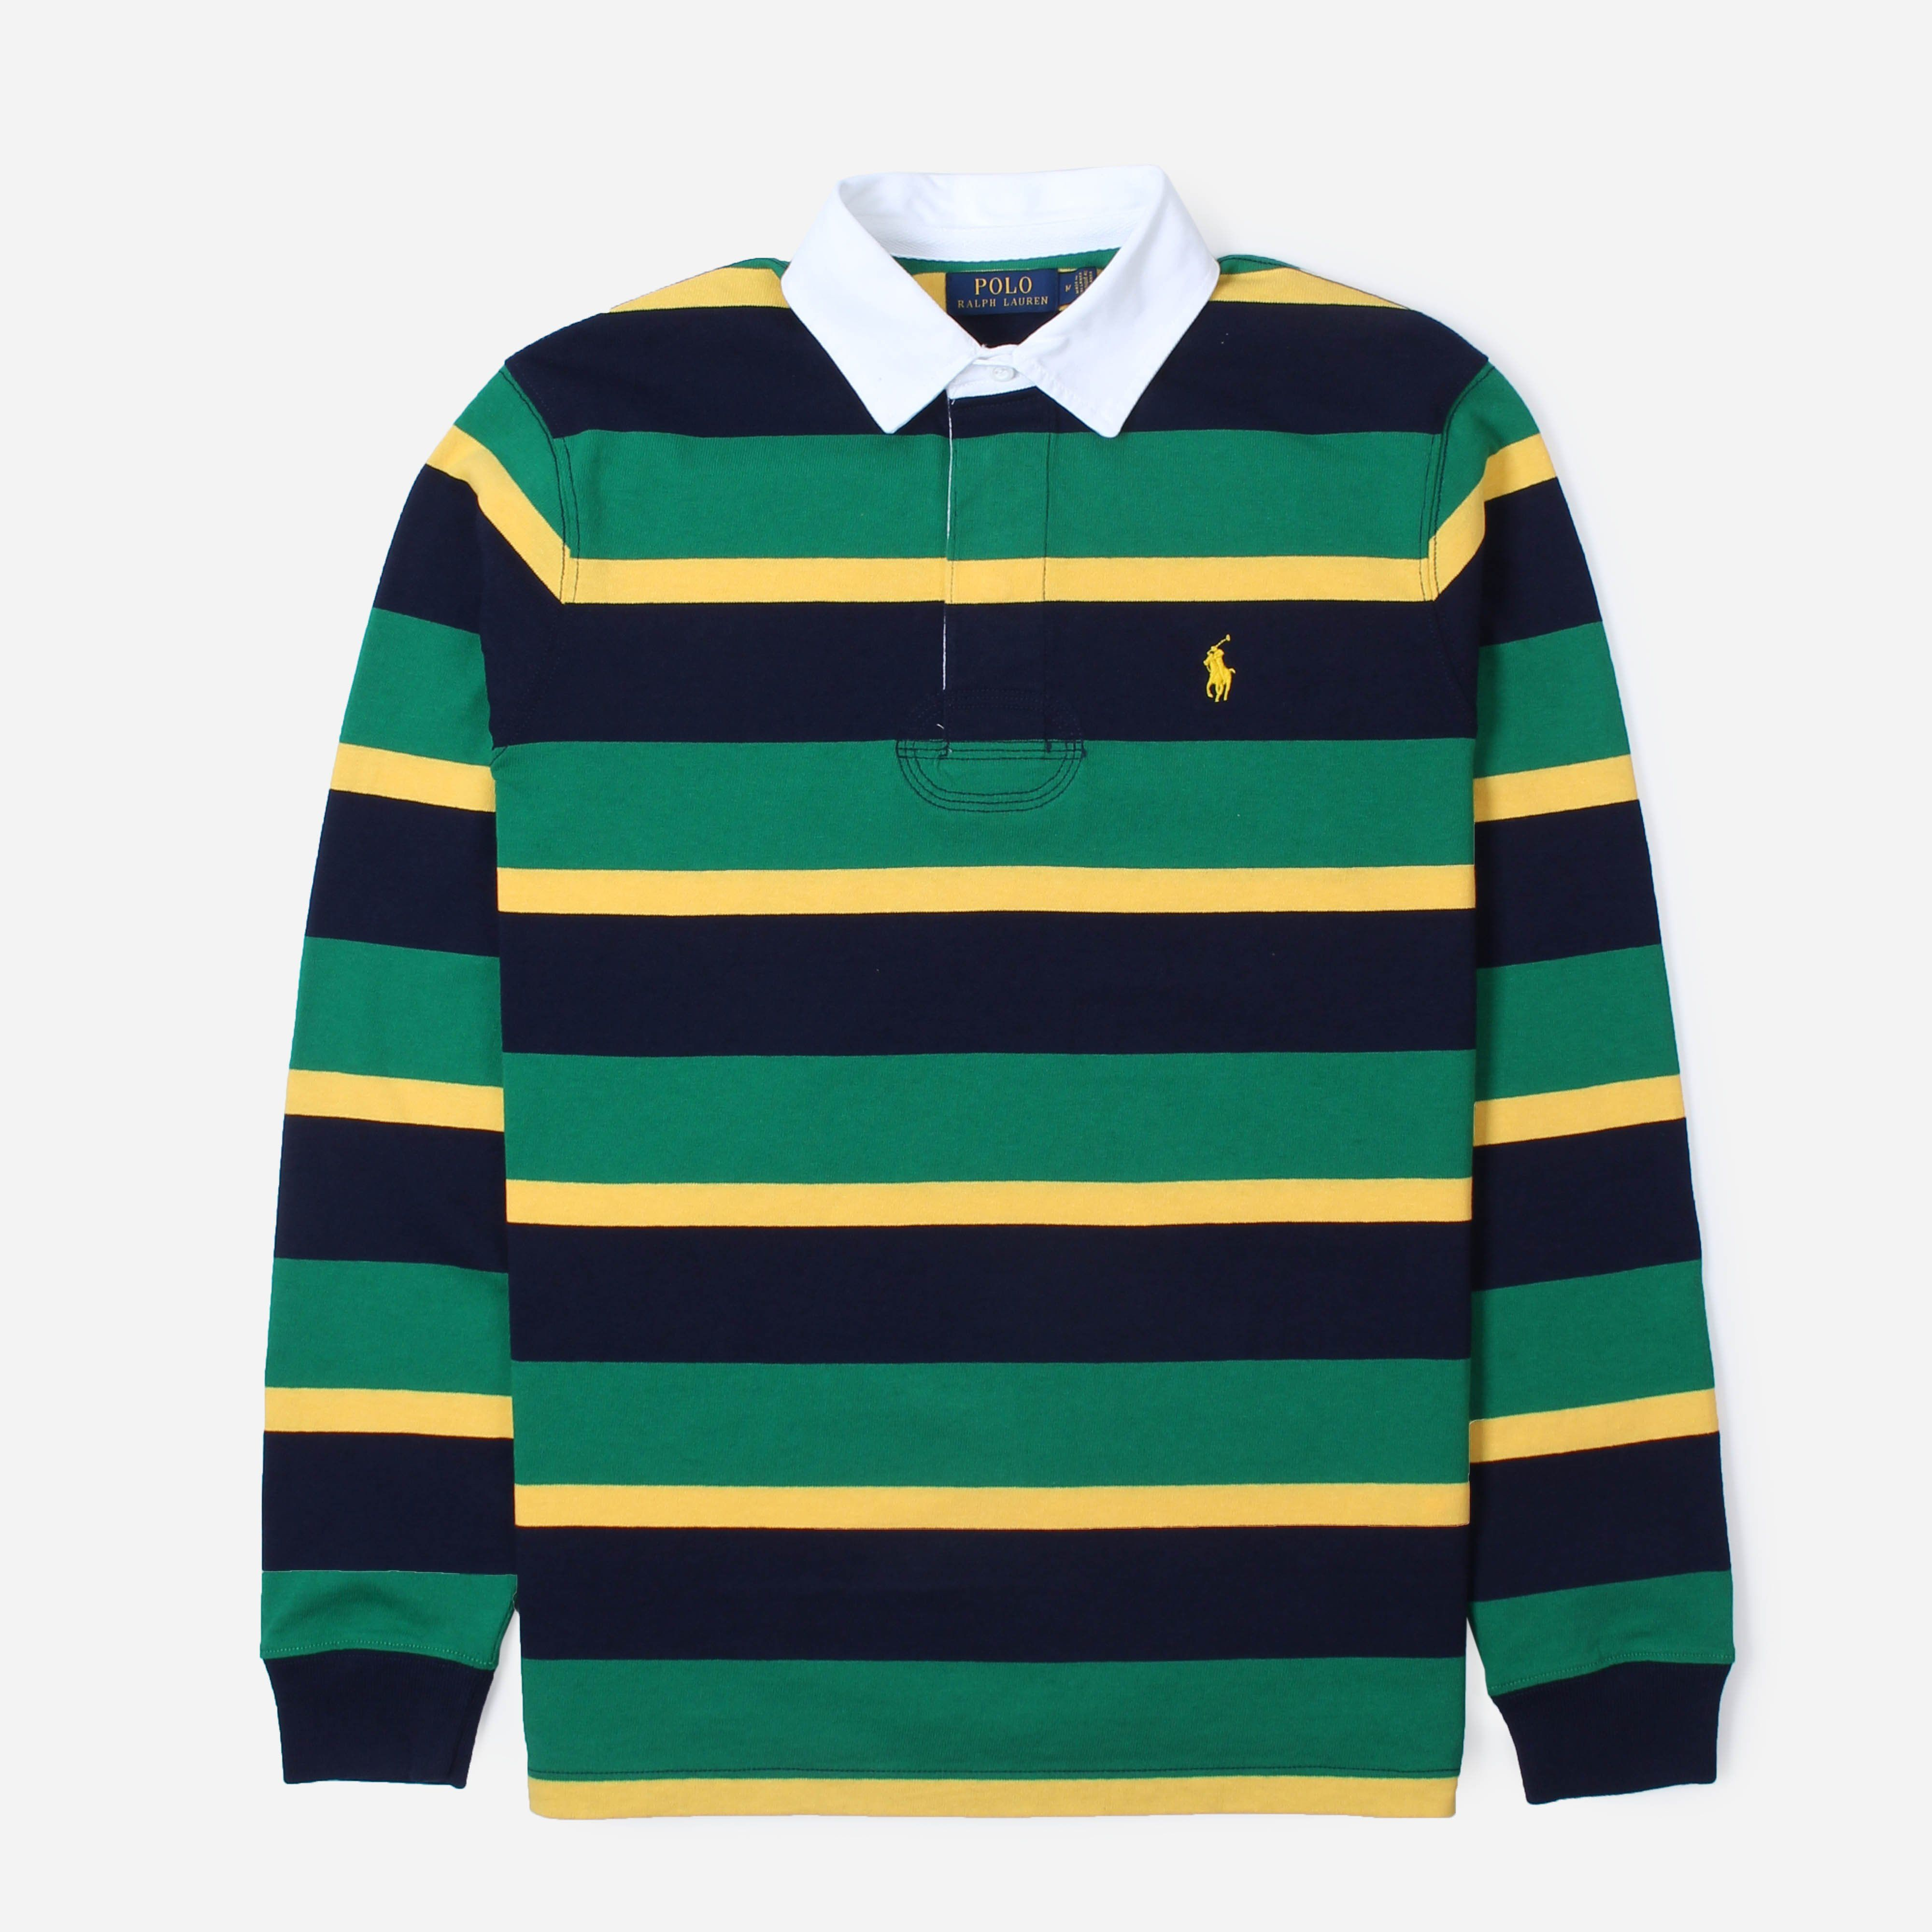 Polo Ralph Lauren Rustic Rugby Polo Shirt